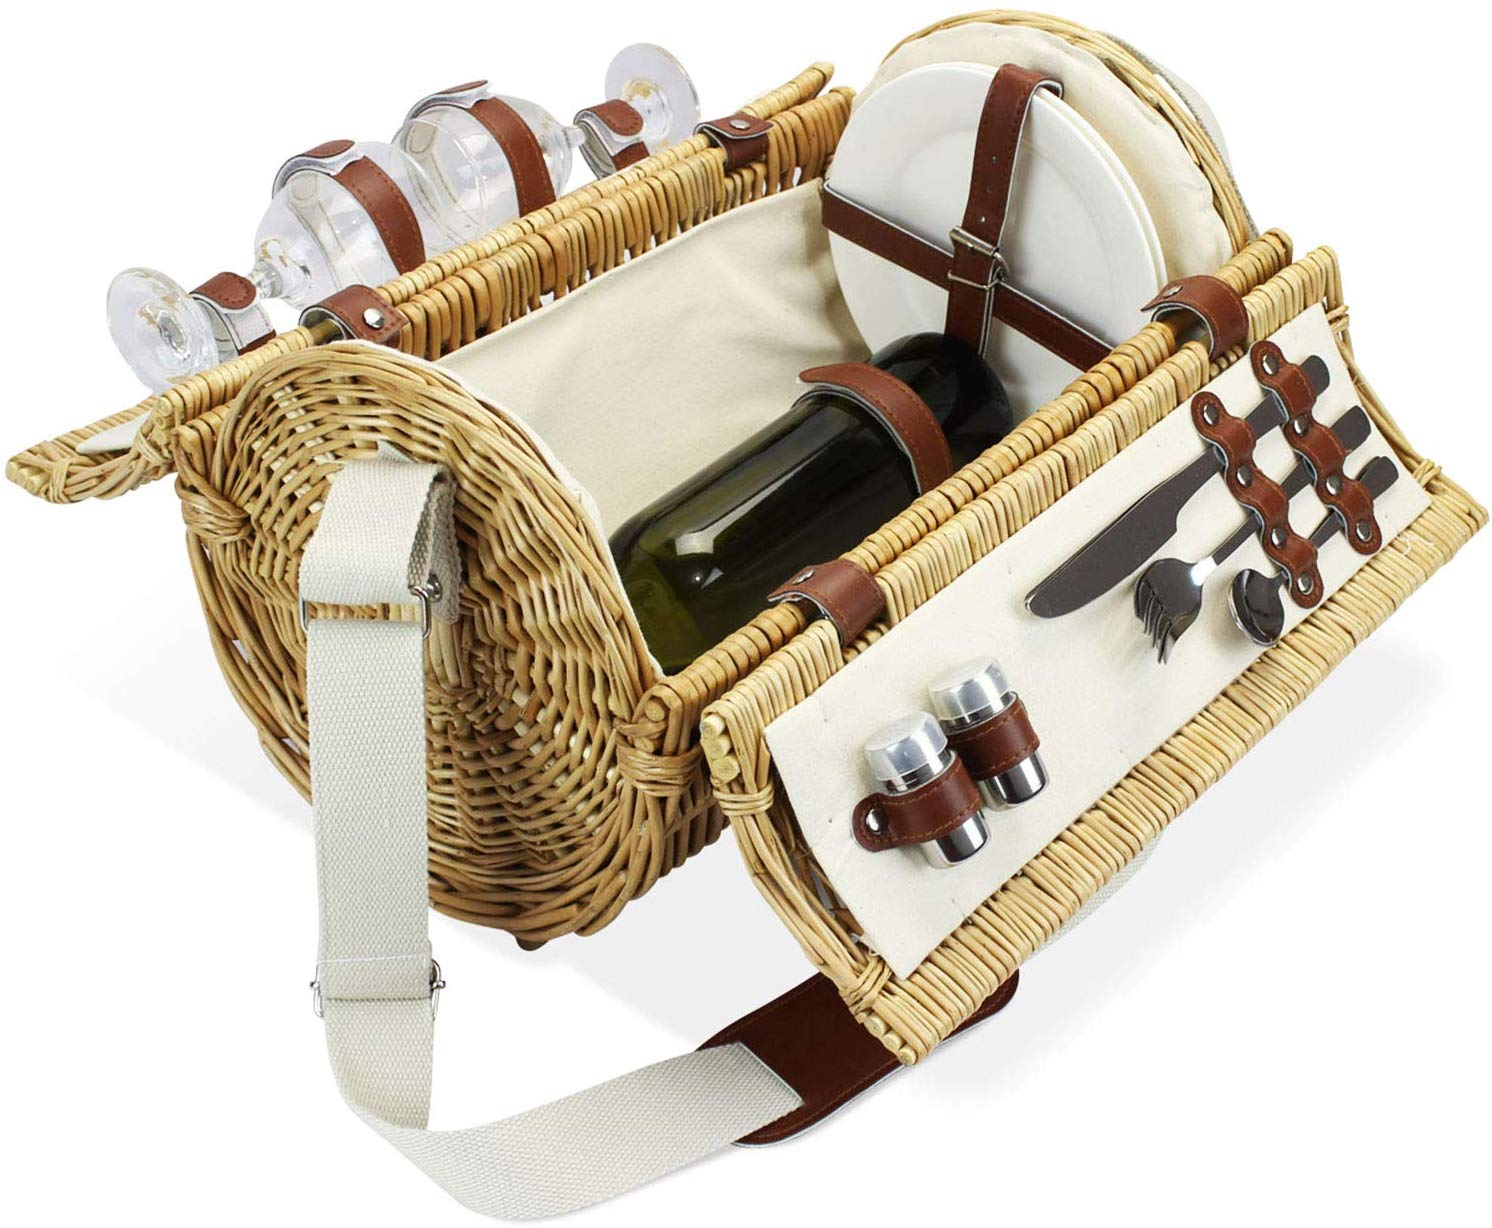 Home Innovation 2 Person Wicker Picnic Basket Set with Straps